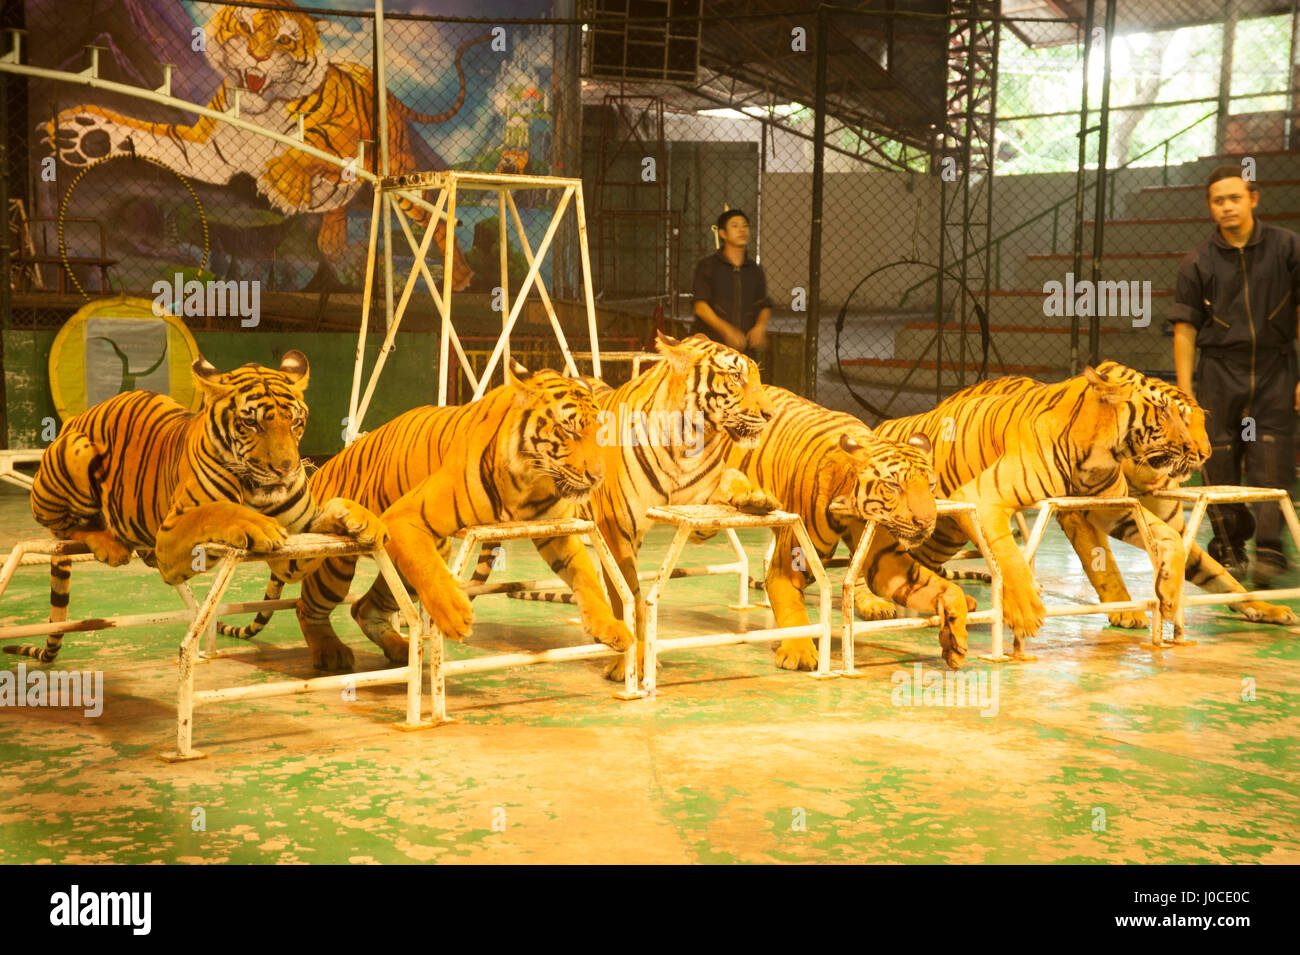 Tiger show sriracha tiger zoo bangkok thailand asia - Show me a picture of the tiger ...